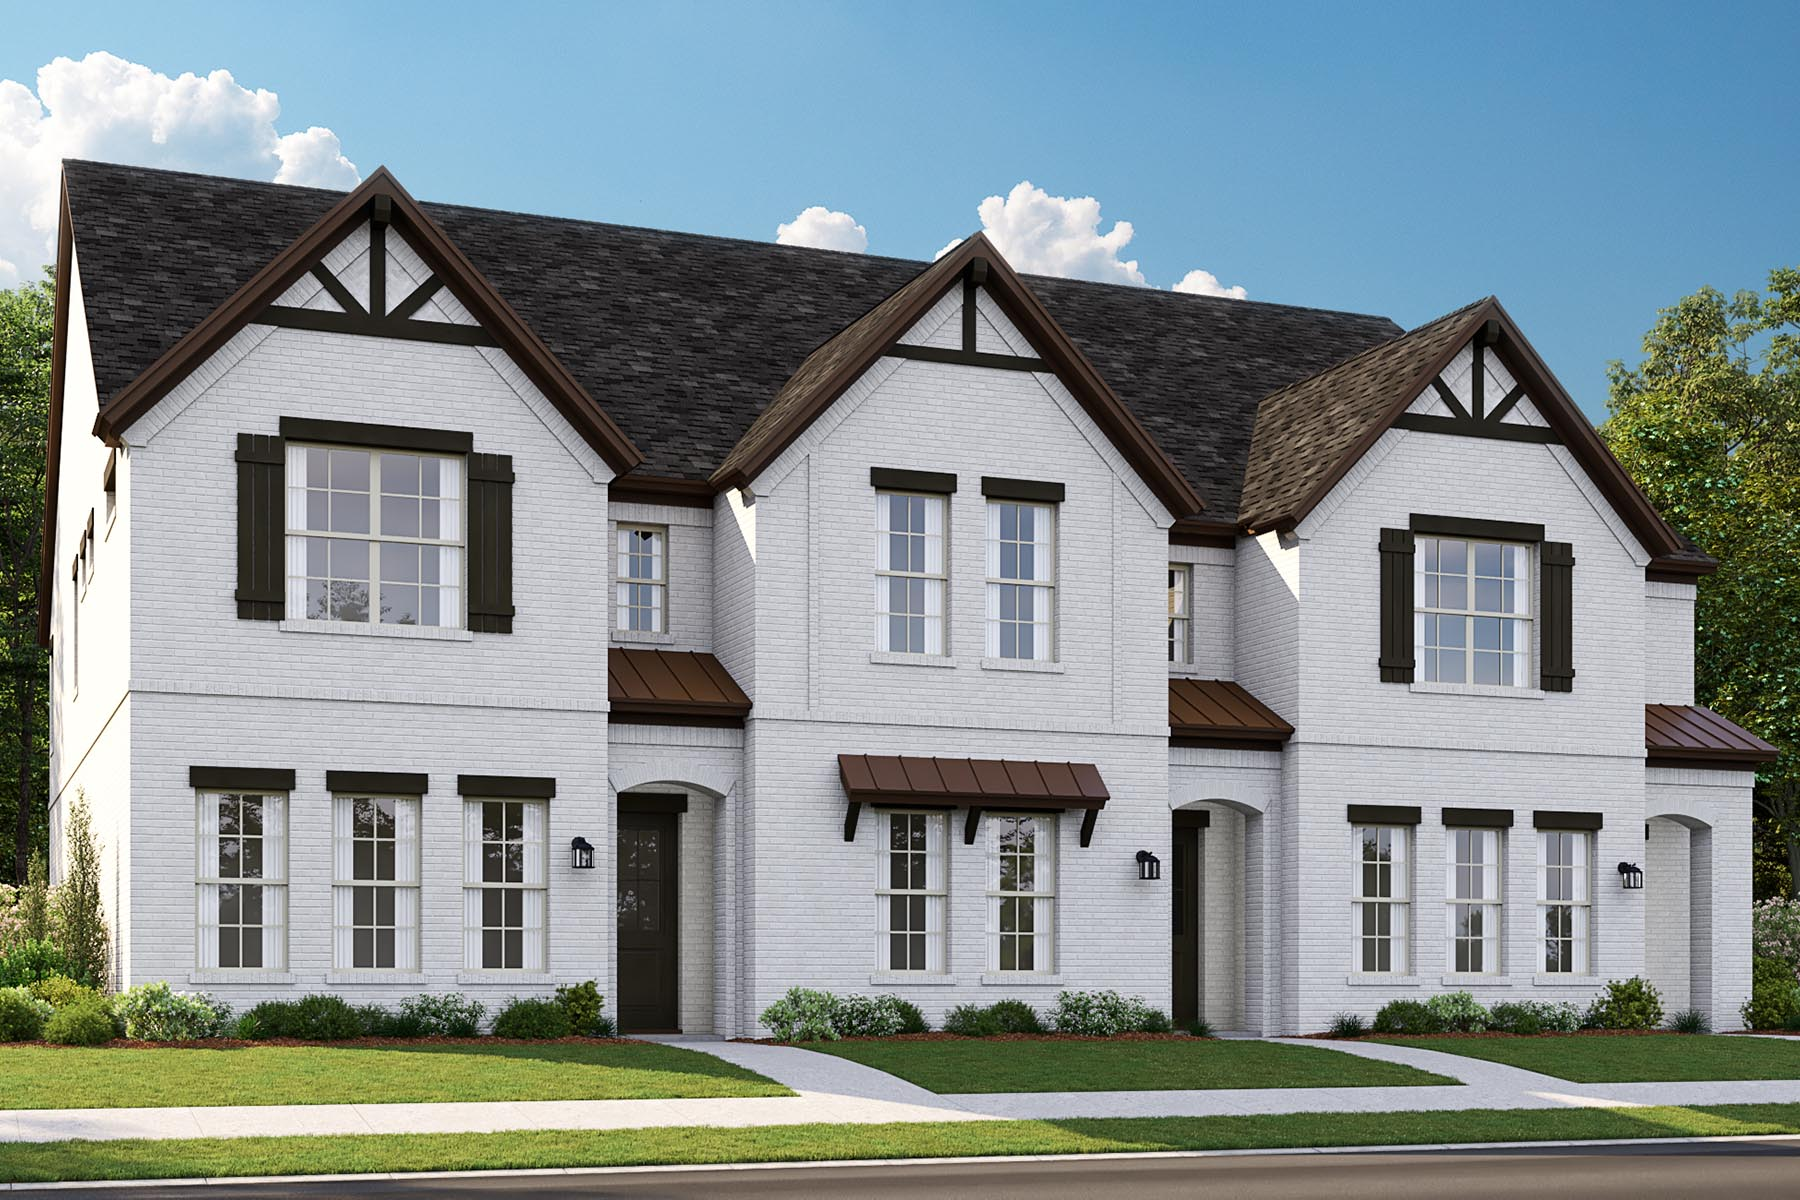 Hacienda Plan TownHomes at Kensington Place in Farmers Branch Texas by Mattamy Homes